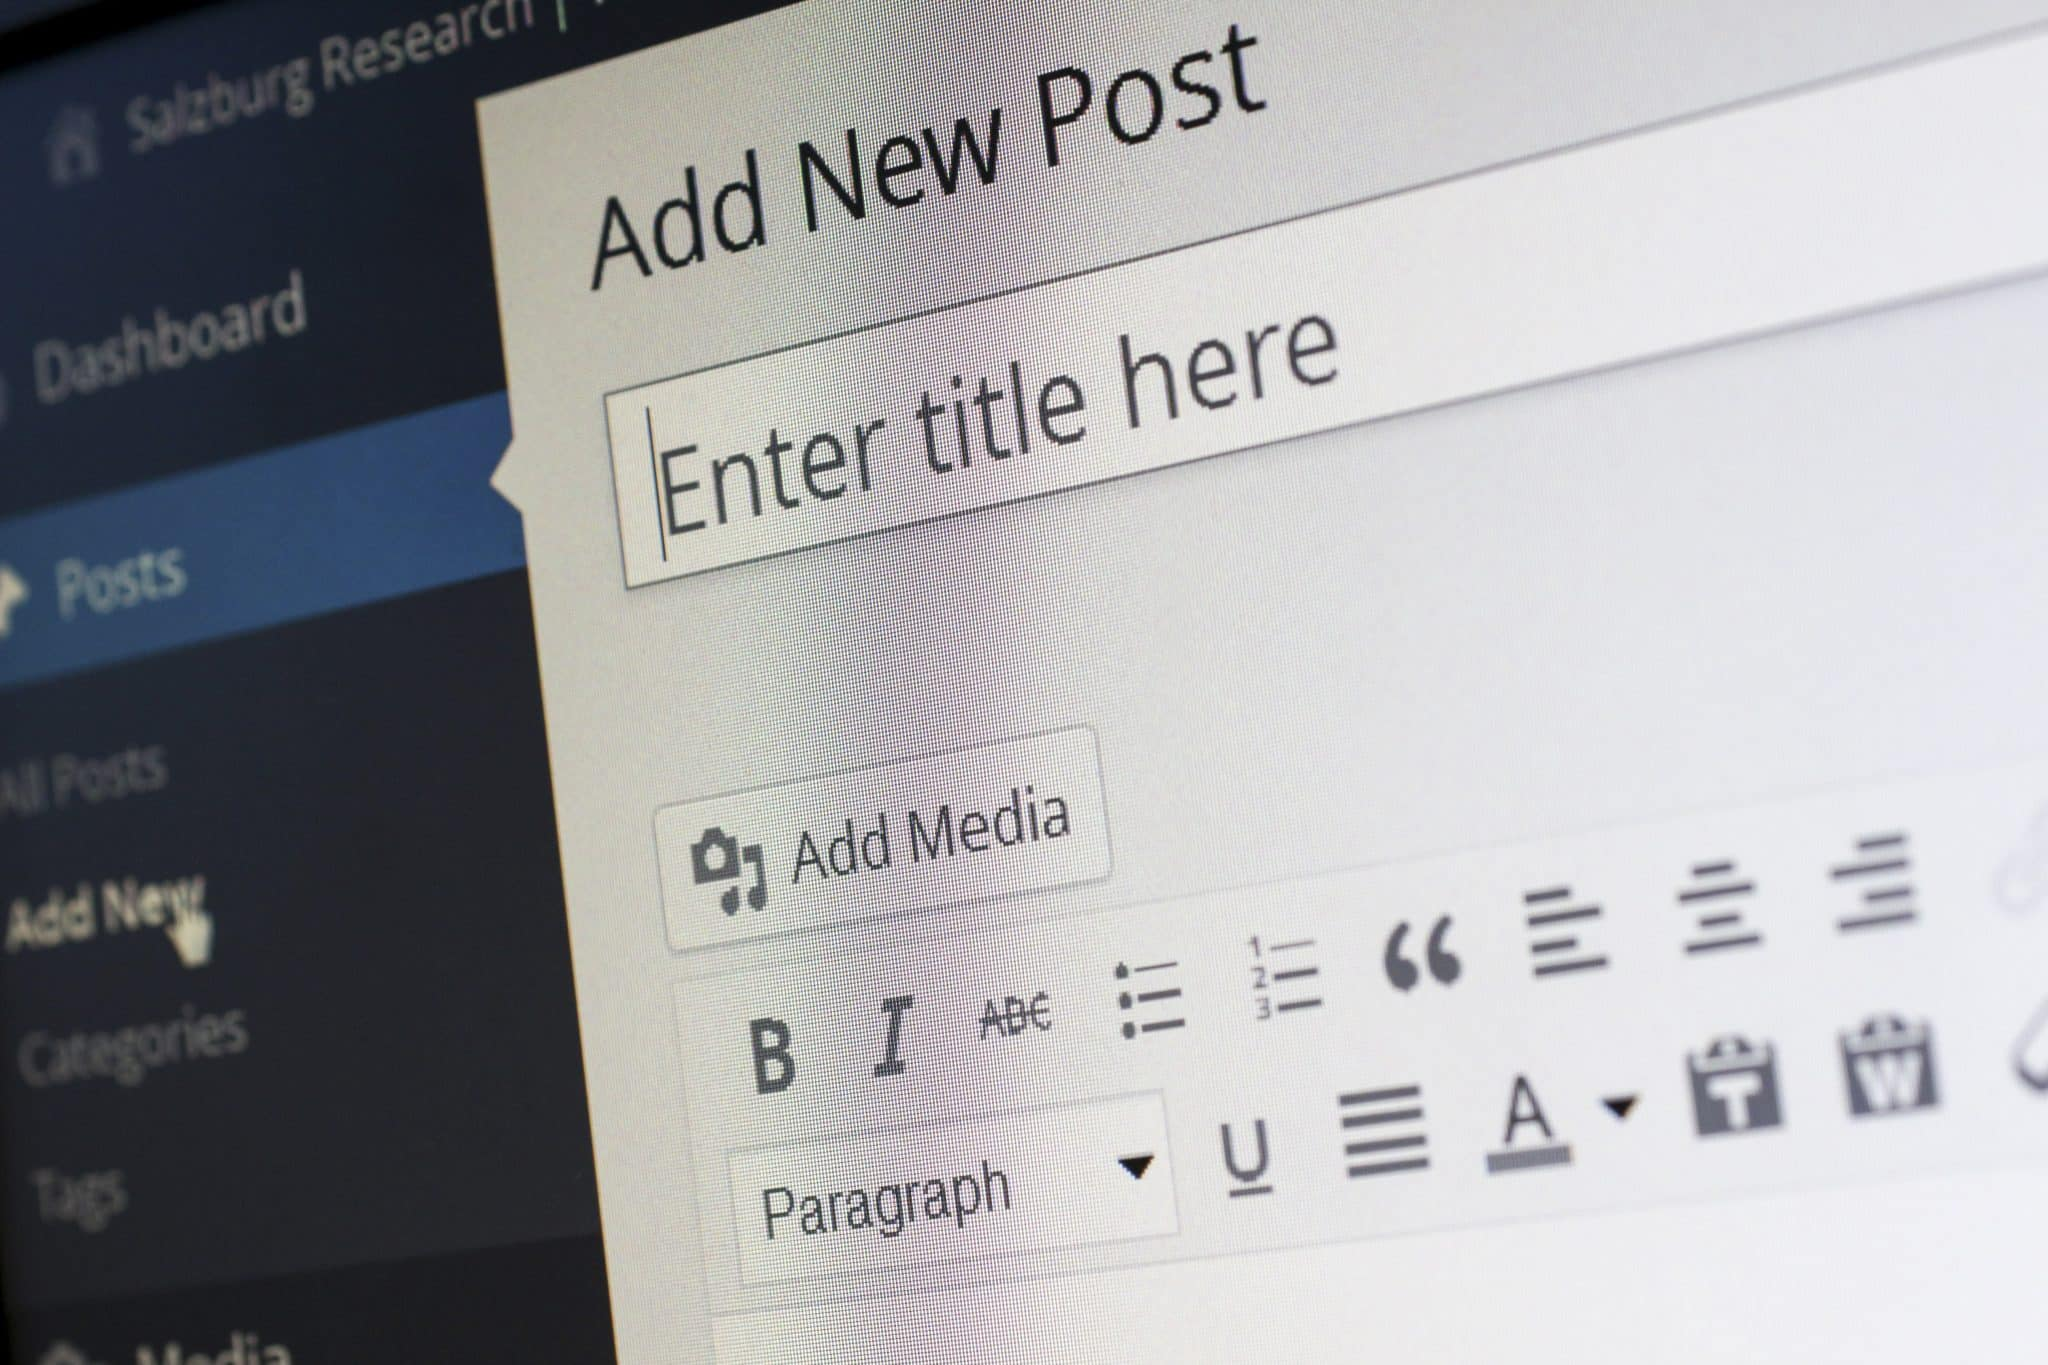 Free WordPress Plugin: Change Titles Case